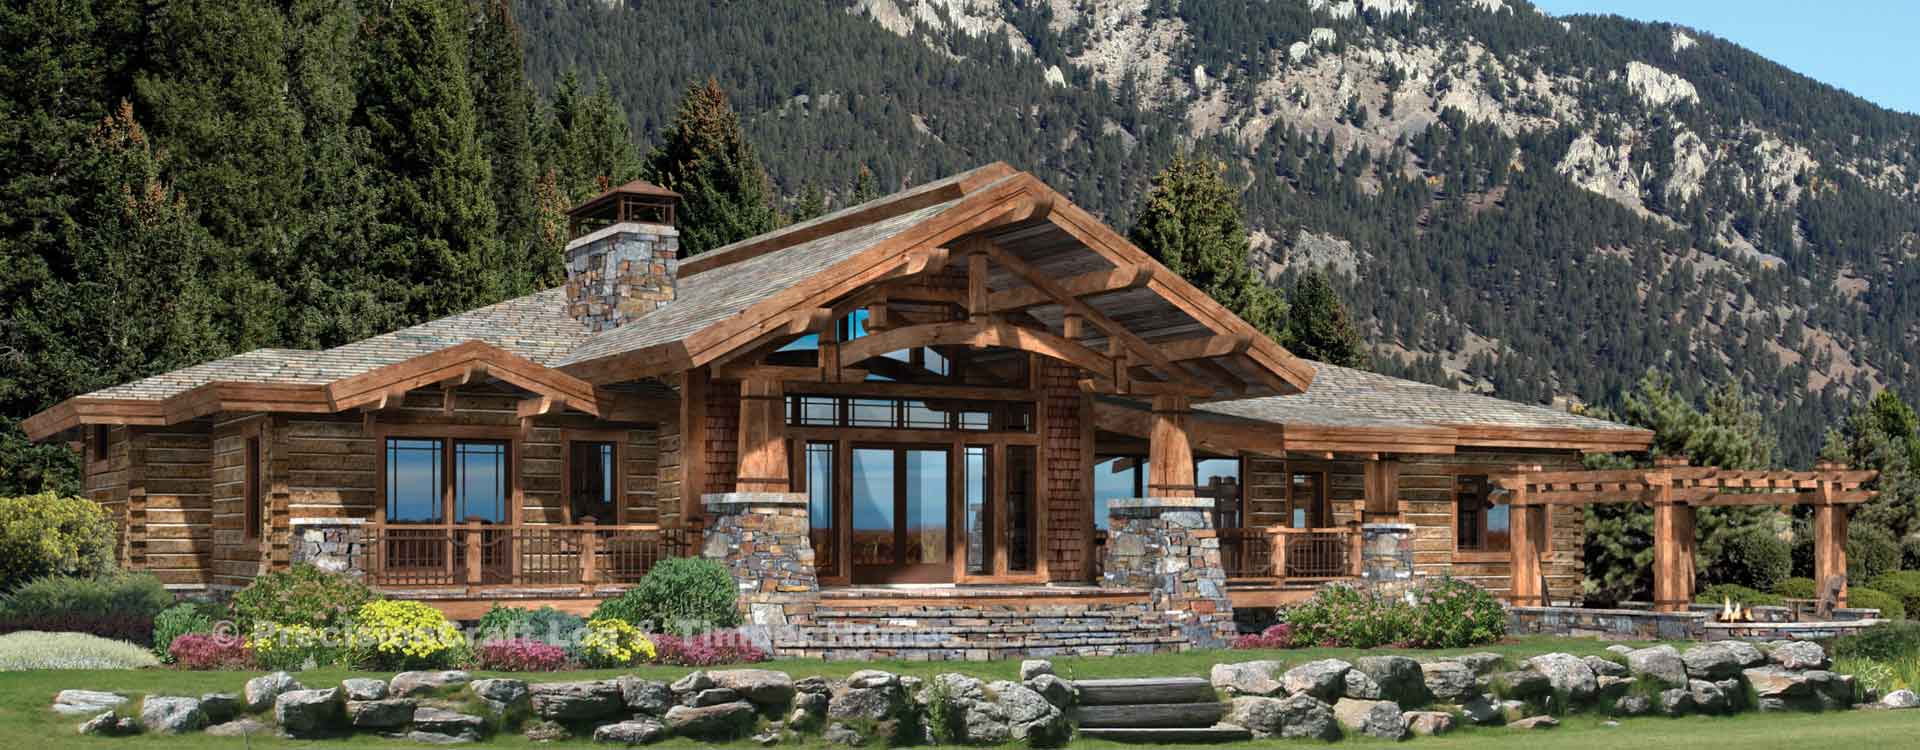 Wood River hybrid log and timber home Rendering